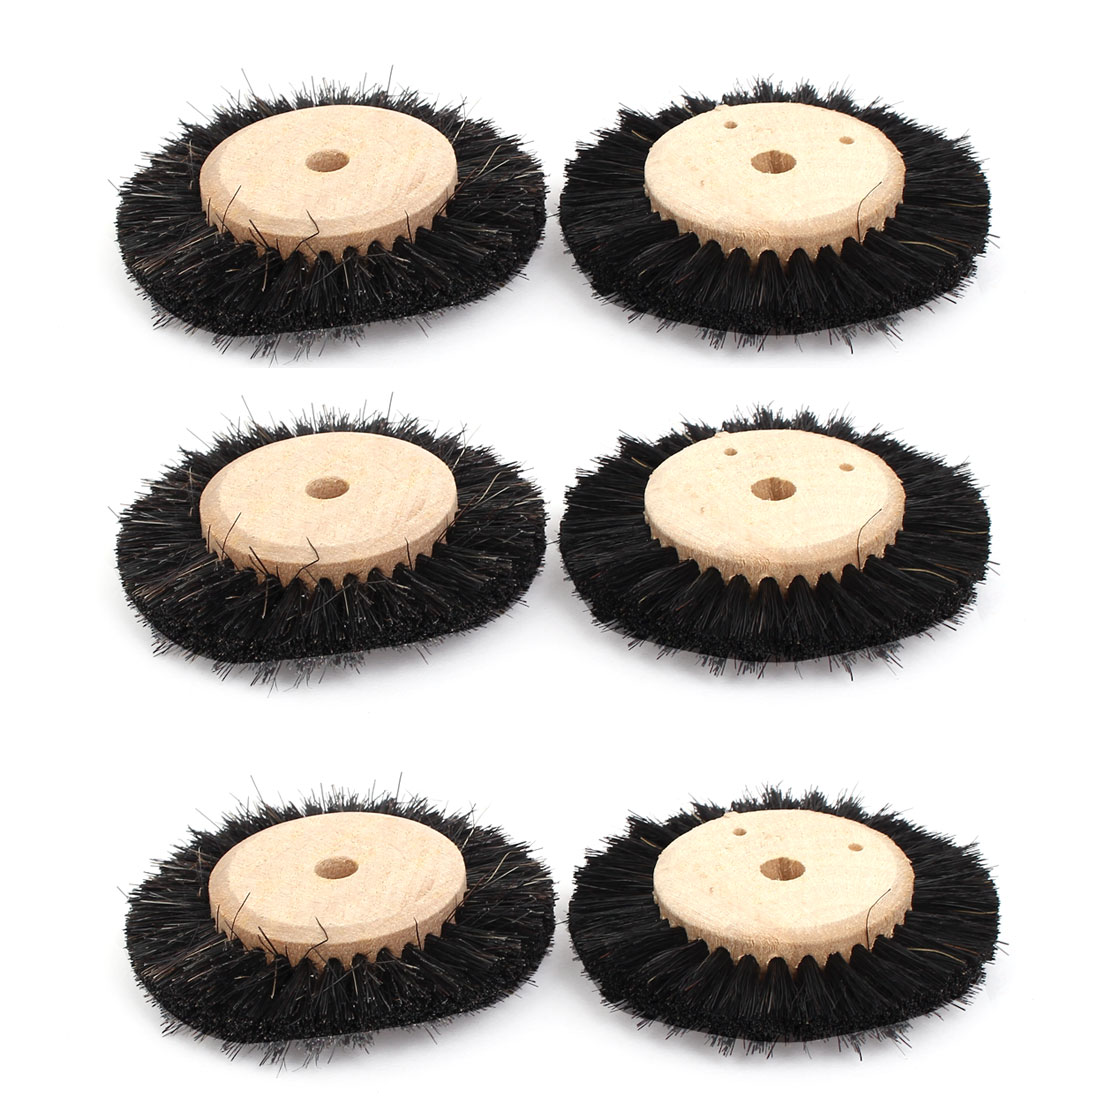 65mm Dia Wooden Hub 2 Rows Bristle Wheel Brushes Grinding Buffing Tools 6pcs